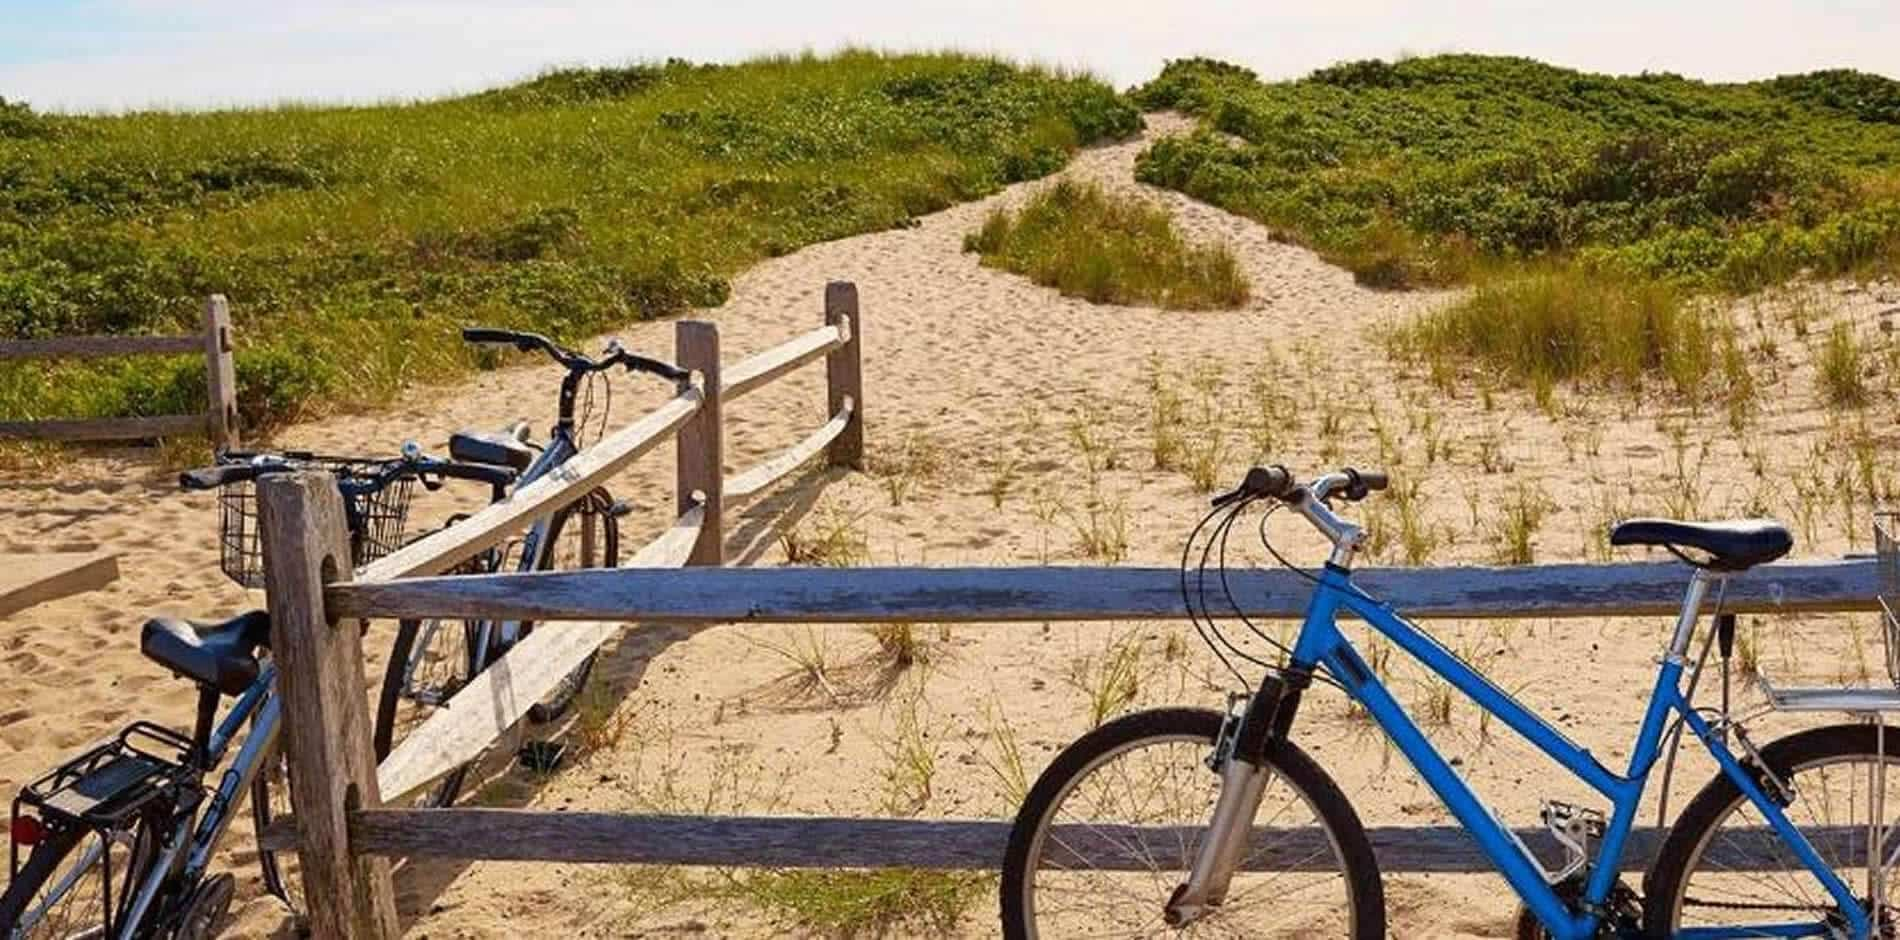 Sand dune topped with greenery and three bicycles parked by a wood fence